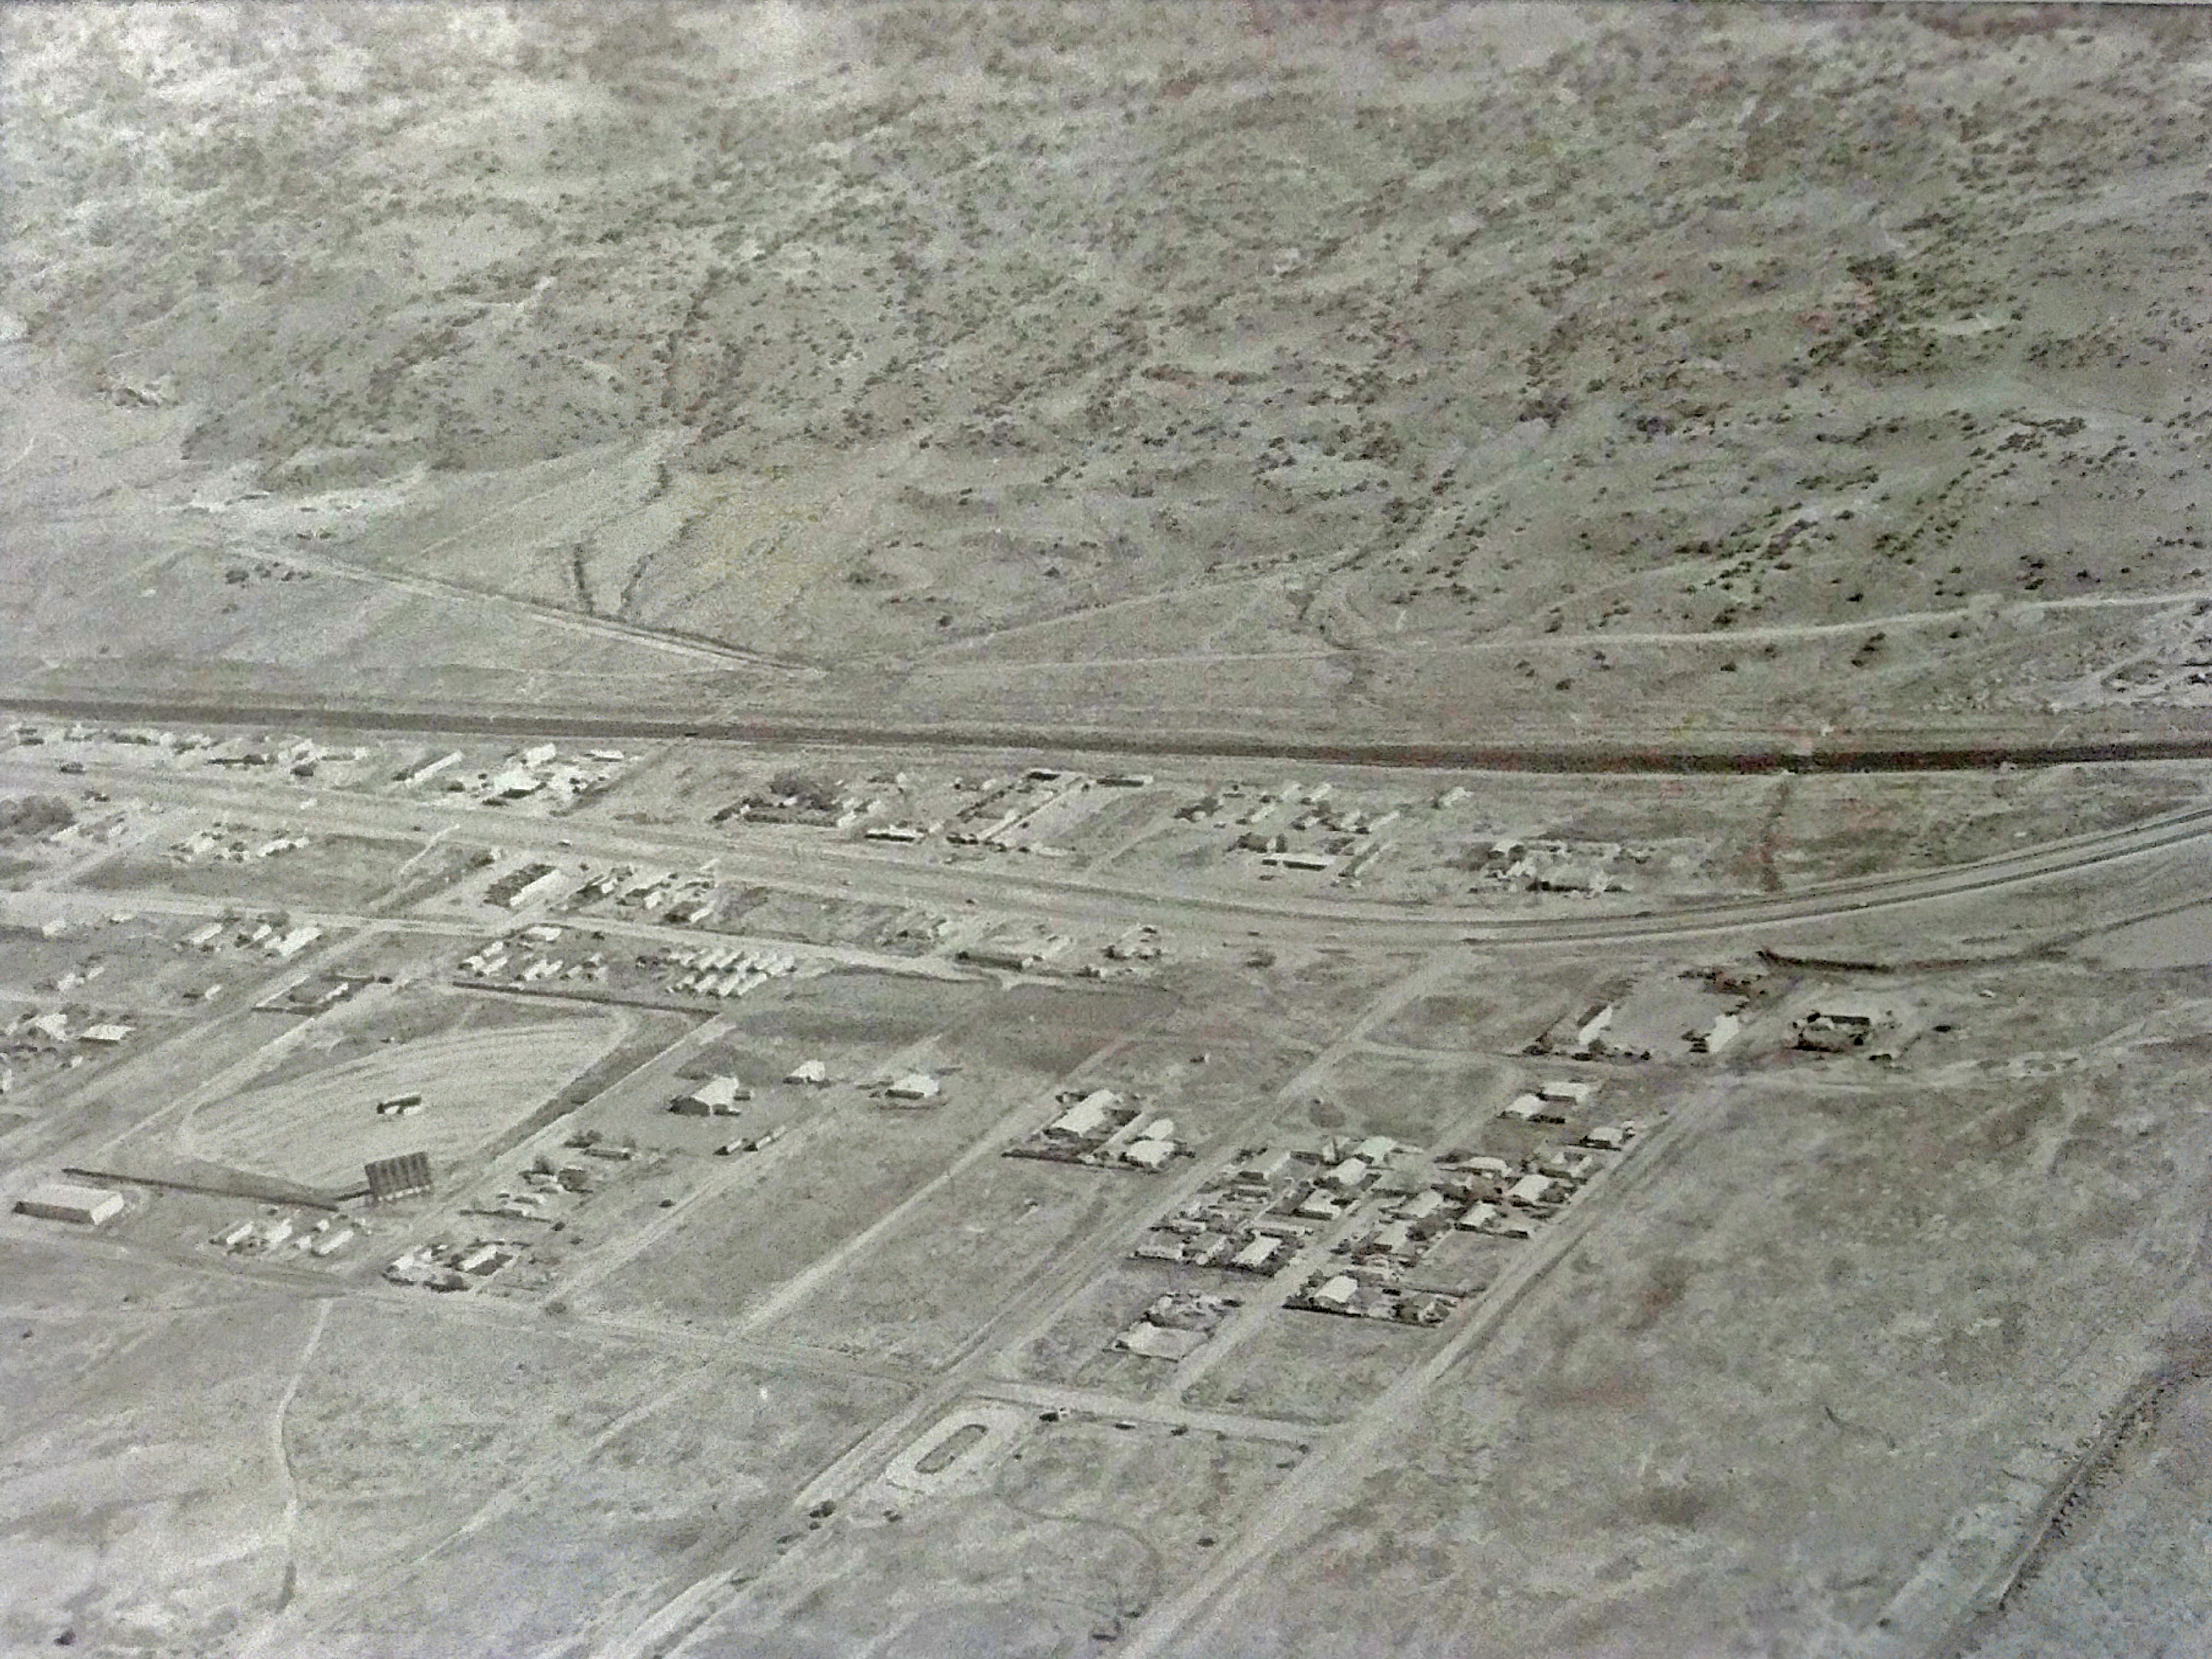 Village of Milan Aerial 1960